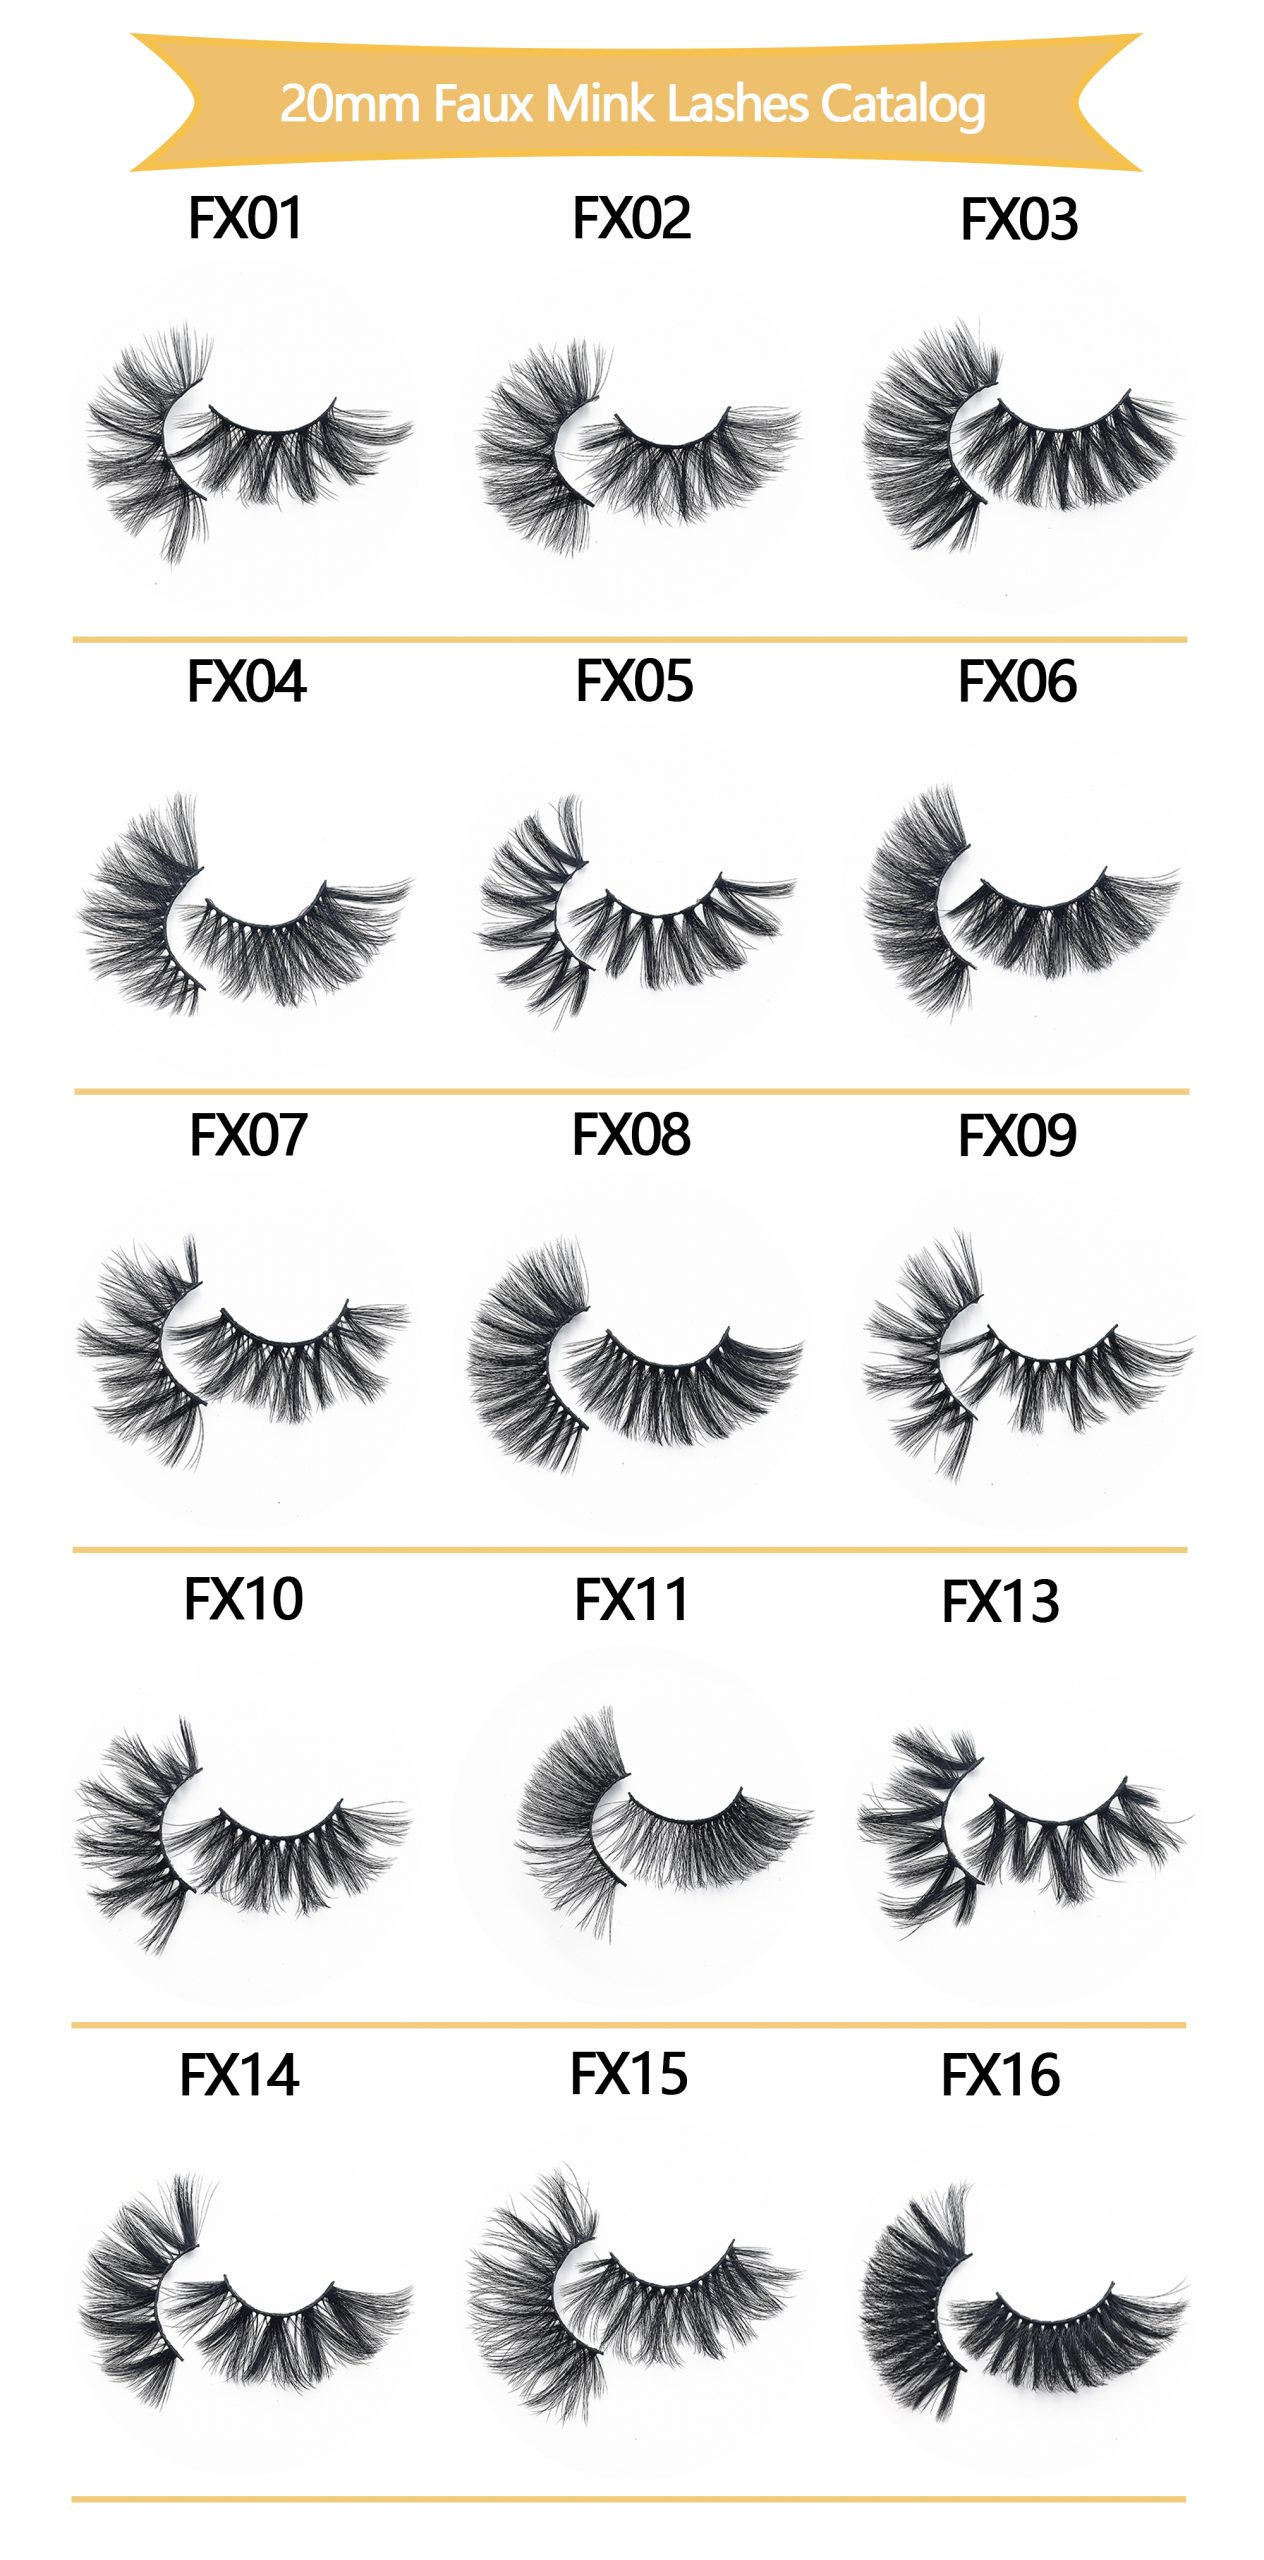 20mm Faux Mink Lashes Catalog 1